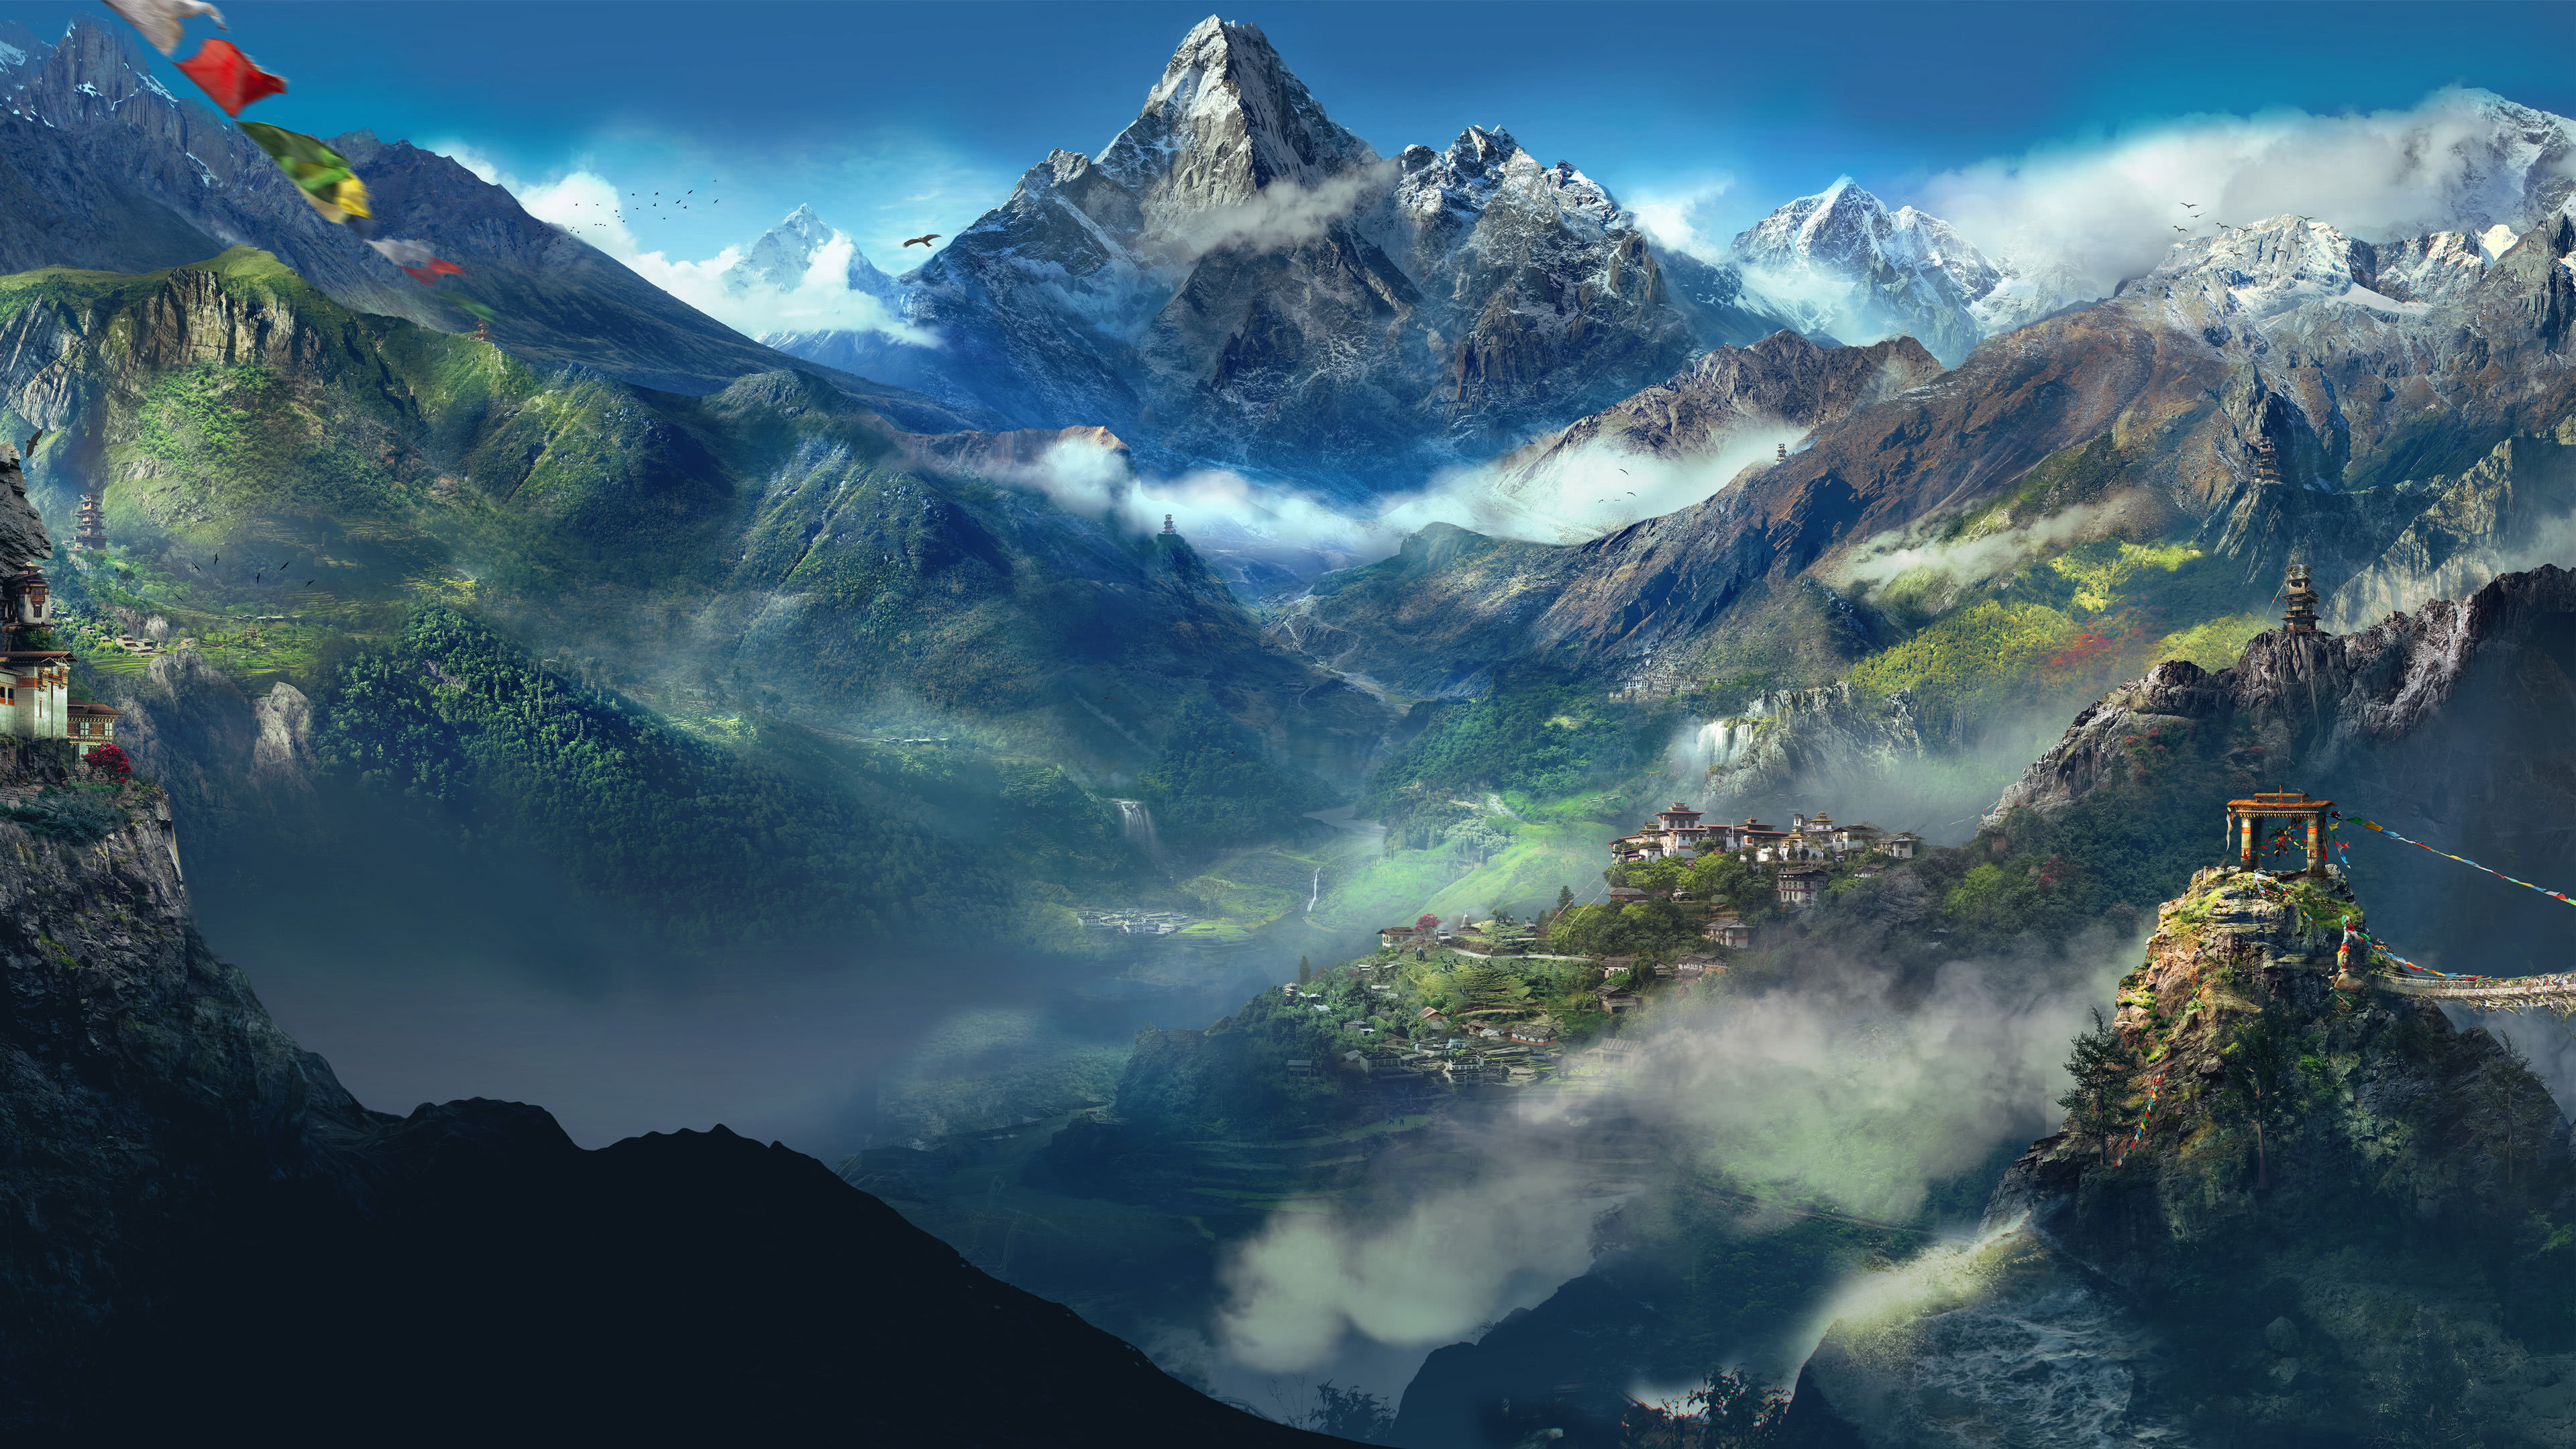 Far Cry 4 Kyrat Mountains Uhd 4k Wallpaper Pixelz